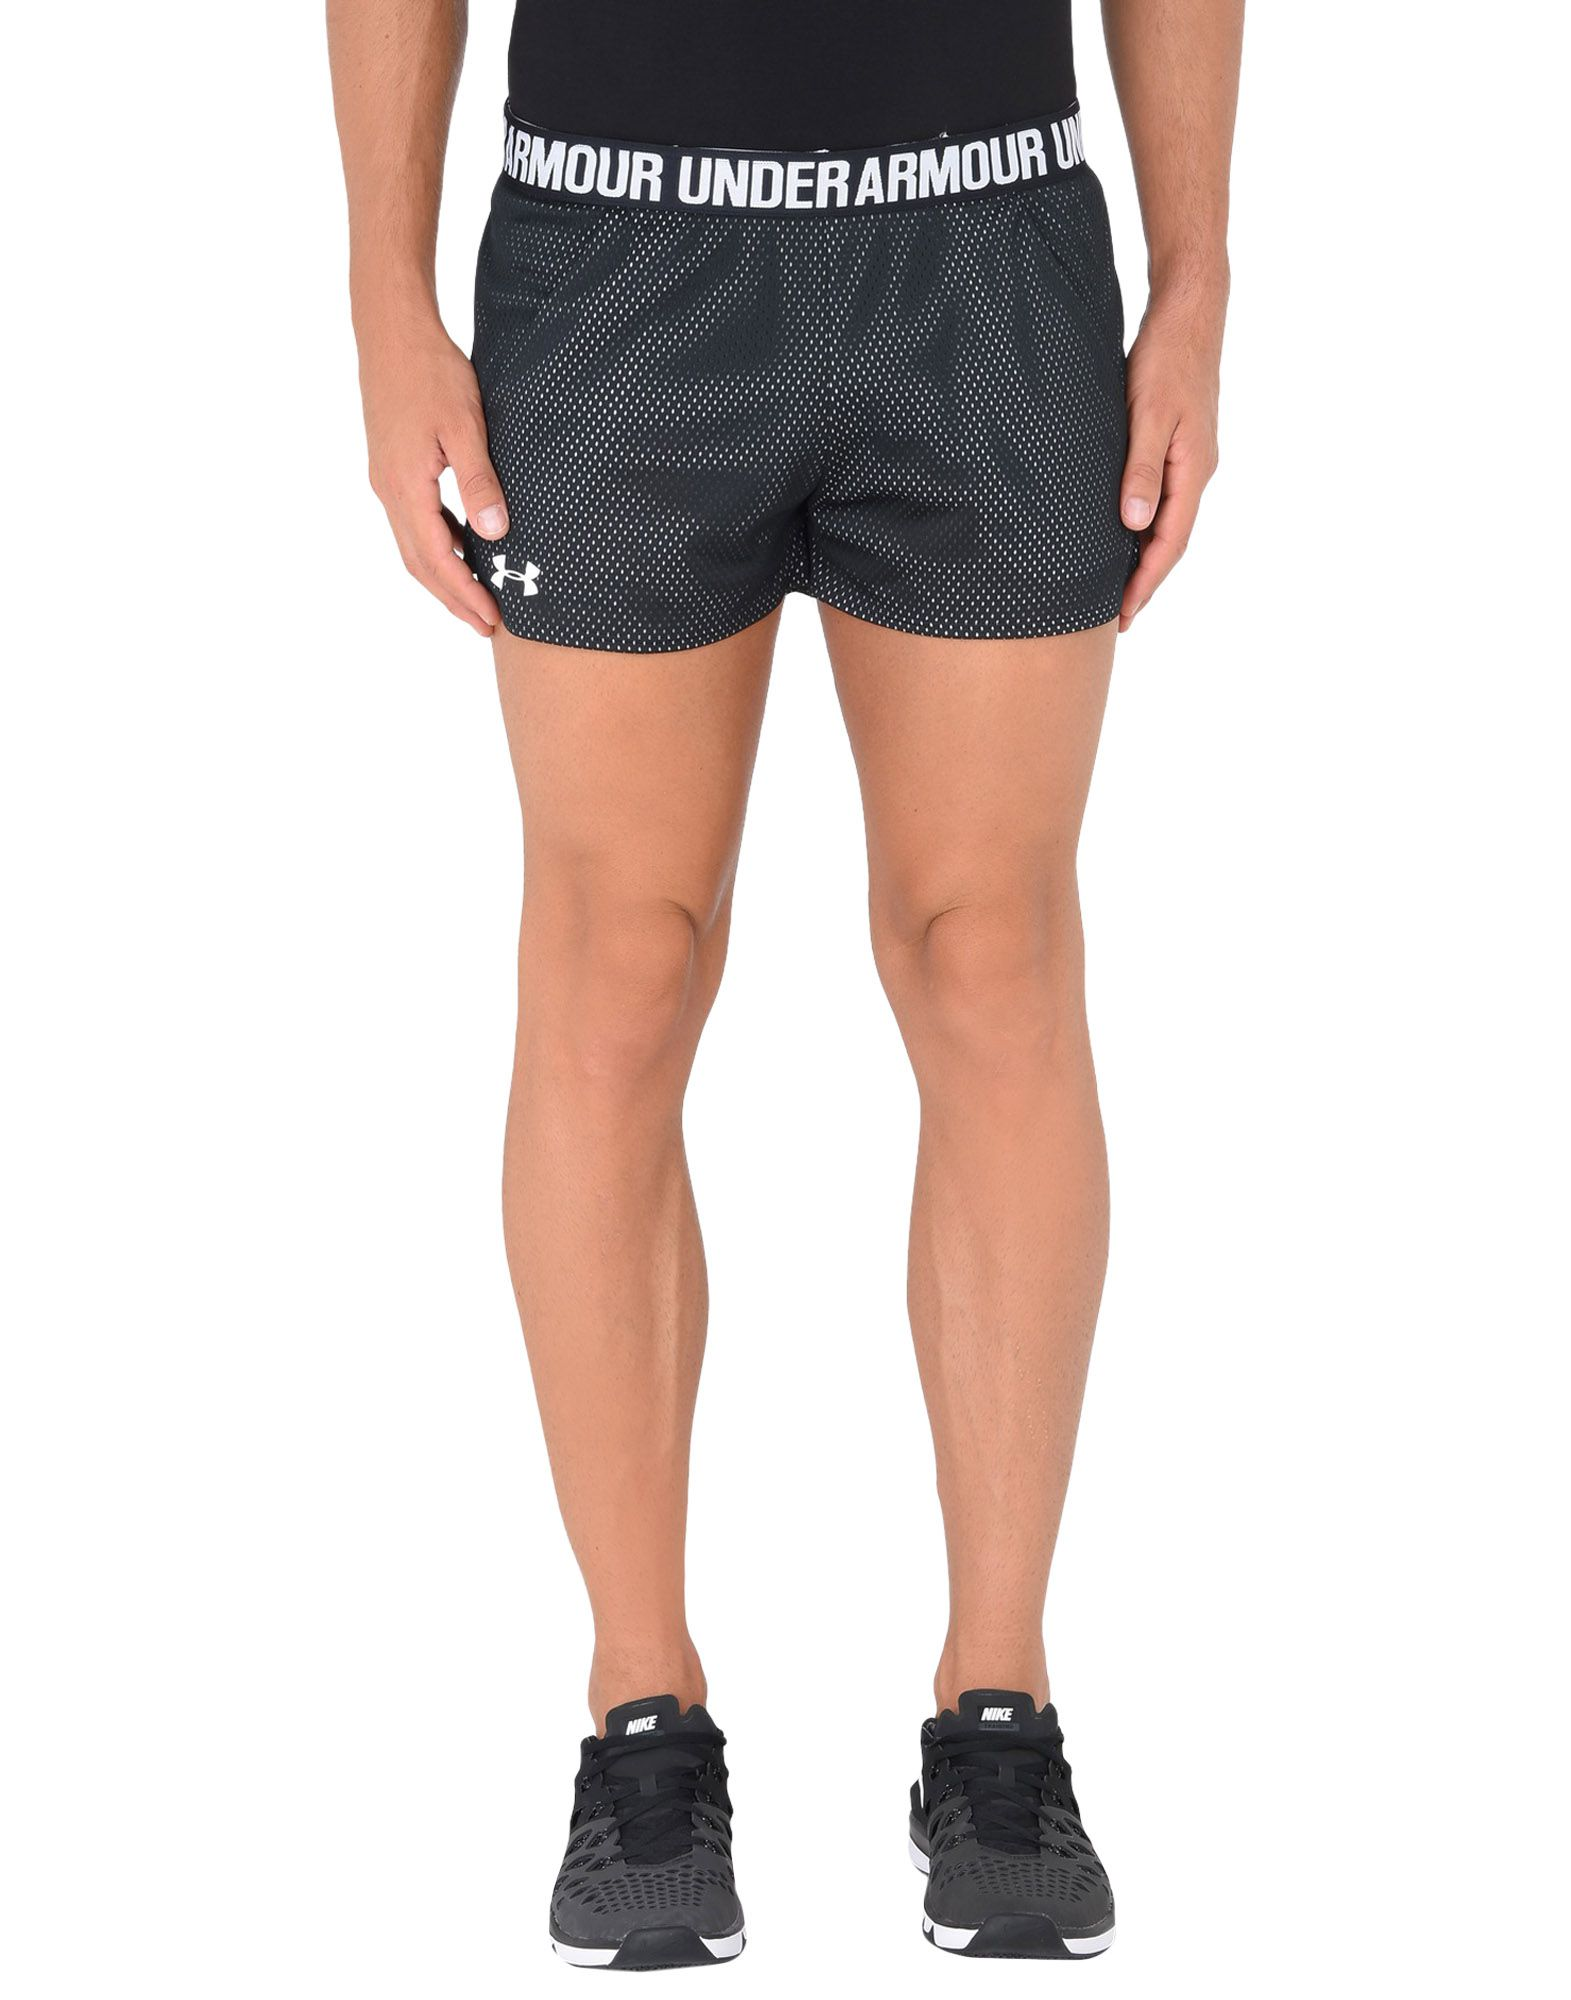 Pantalone Sportivo Under Armour Mesh Play Up Short Uomo - Uomo Short - 13083330XT b95065